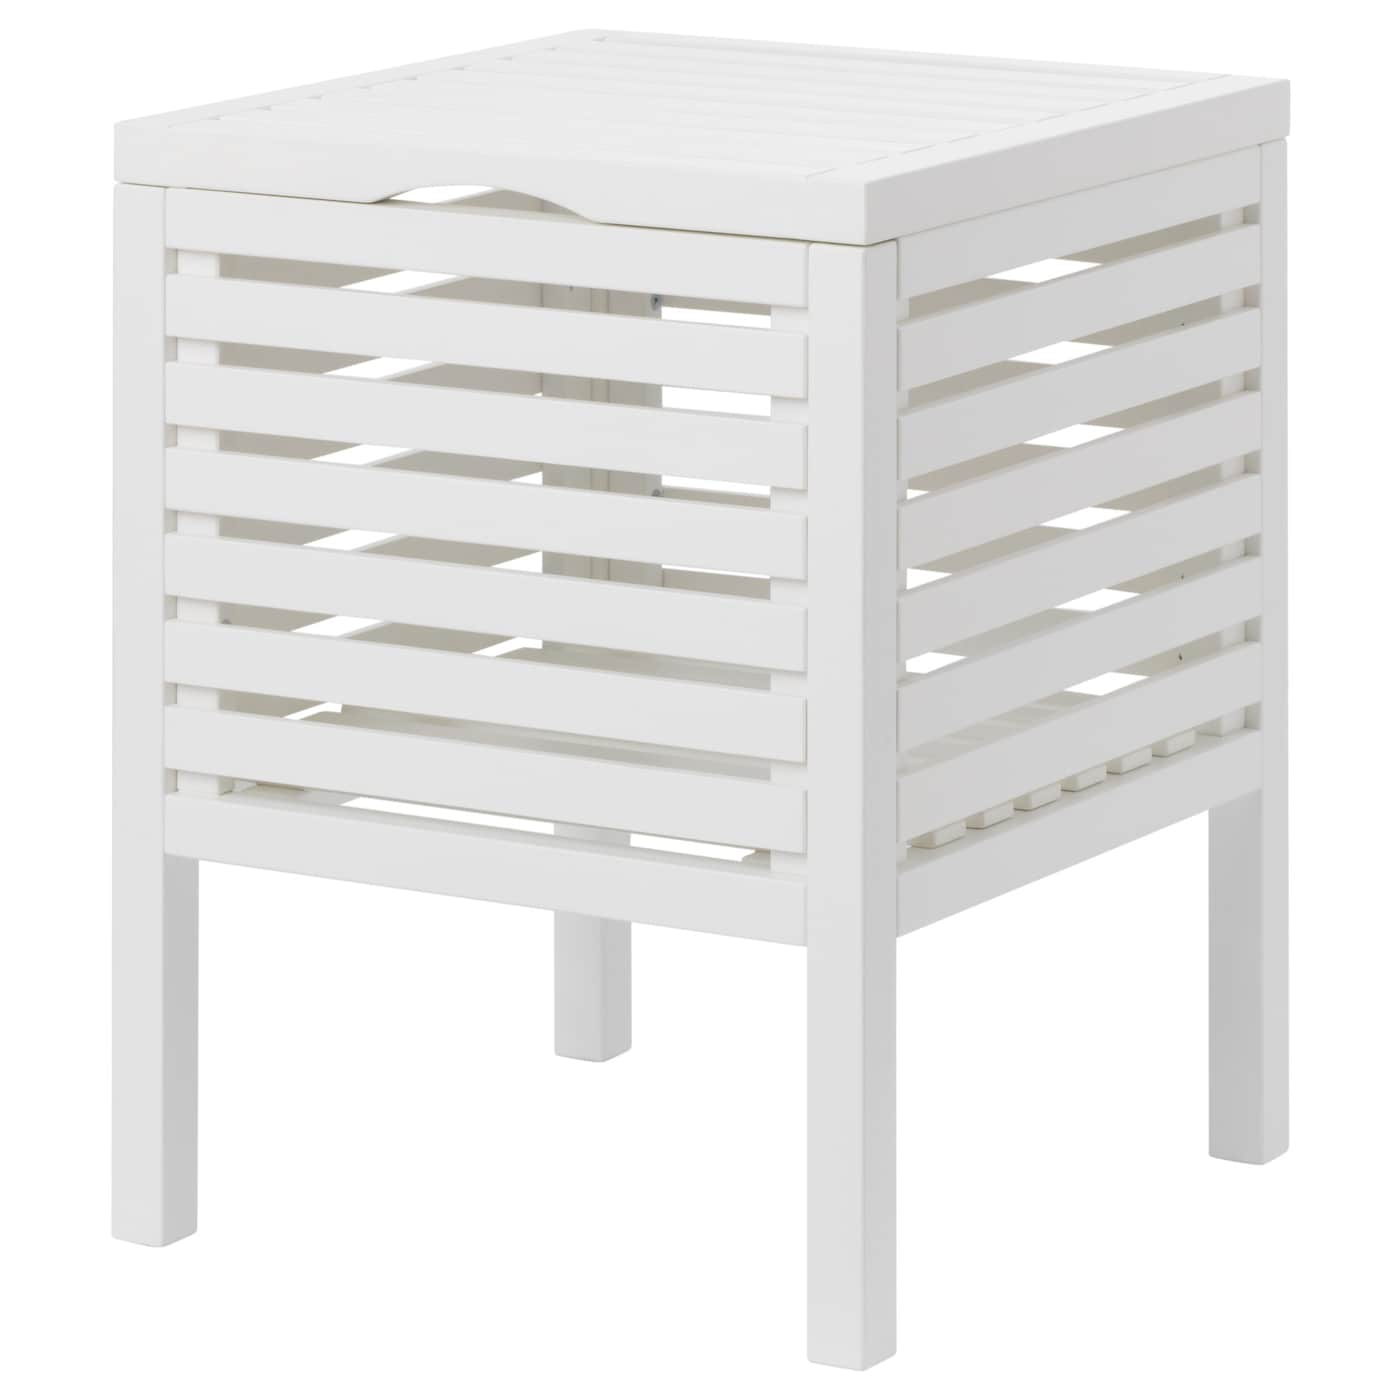 IKEA MUSKAN storage stool Easy to clean since the surface is clear lacquered.